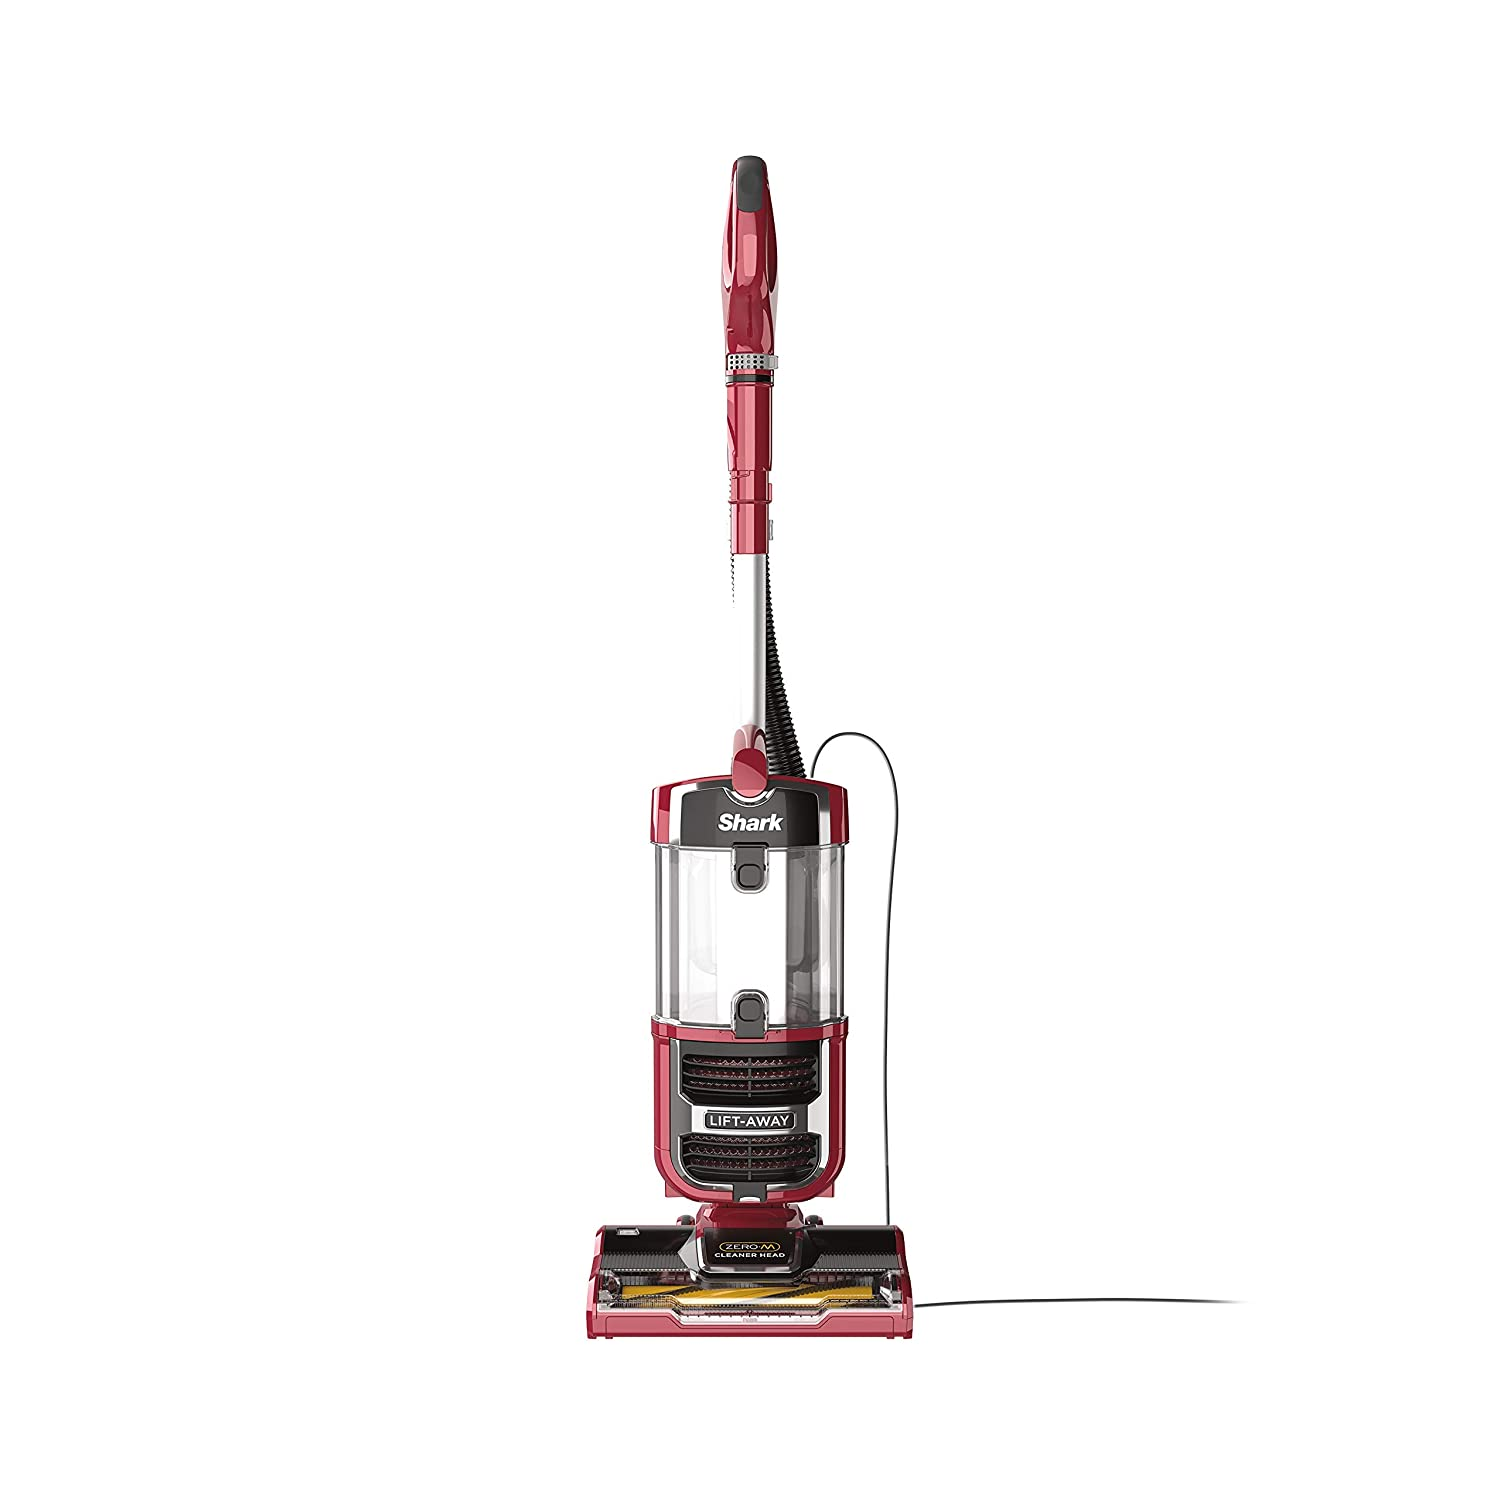 Shark Navigator Upright Vacuum with Lift-Away, Zero-M Anti-Hair Wrap Technology, Anti-Allergen + HEPA Filter and Swivel Steering (ZU561), Red Peony (Renewed)